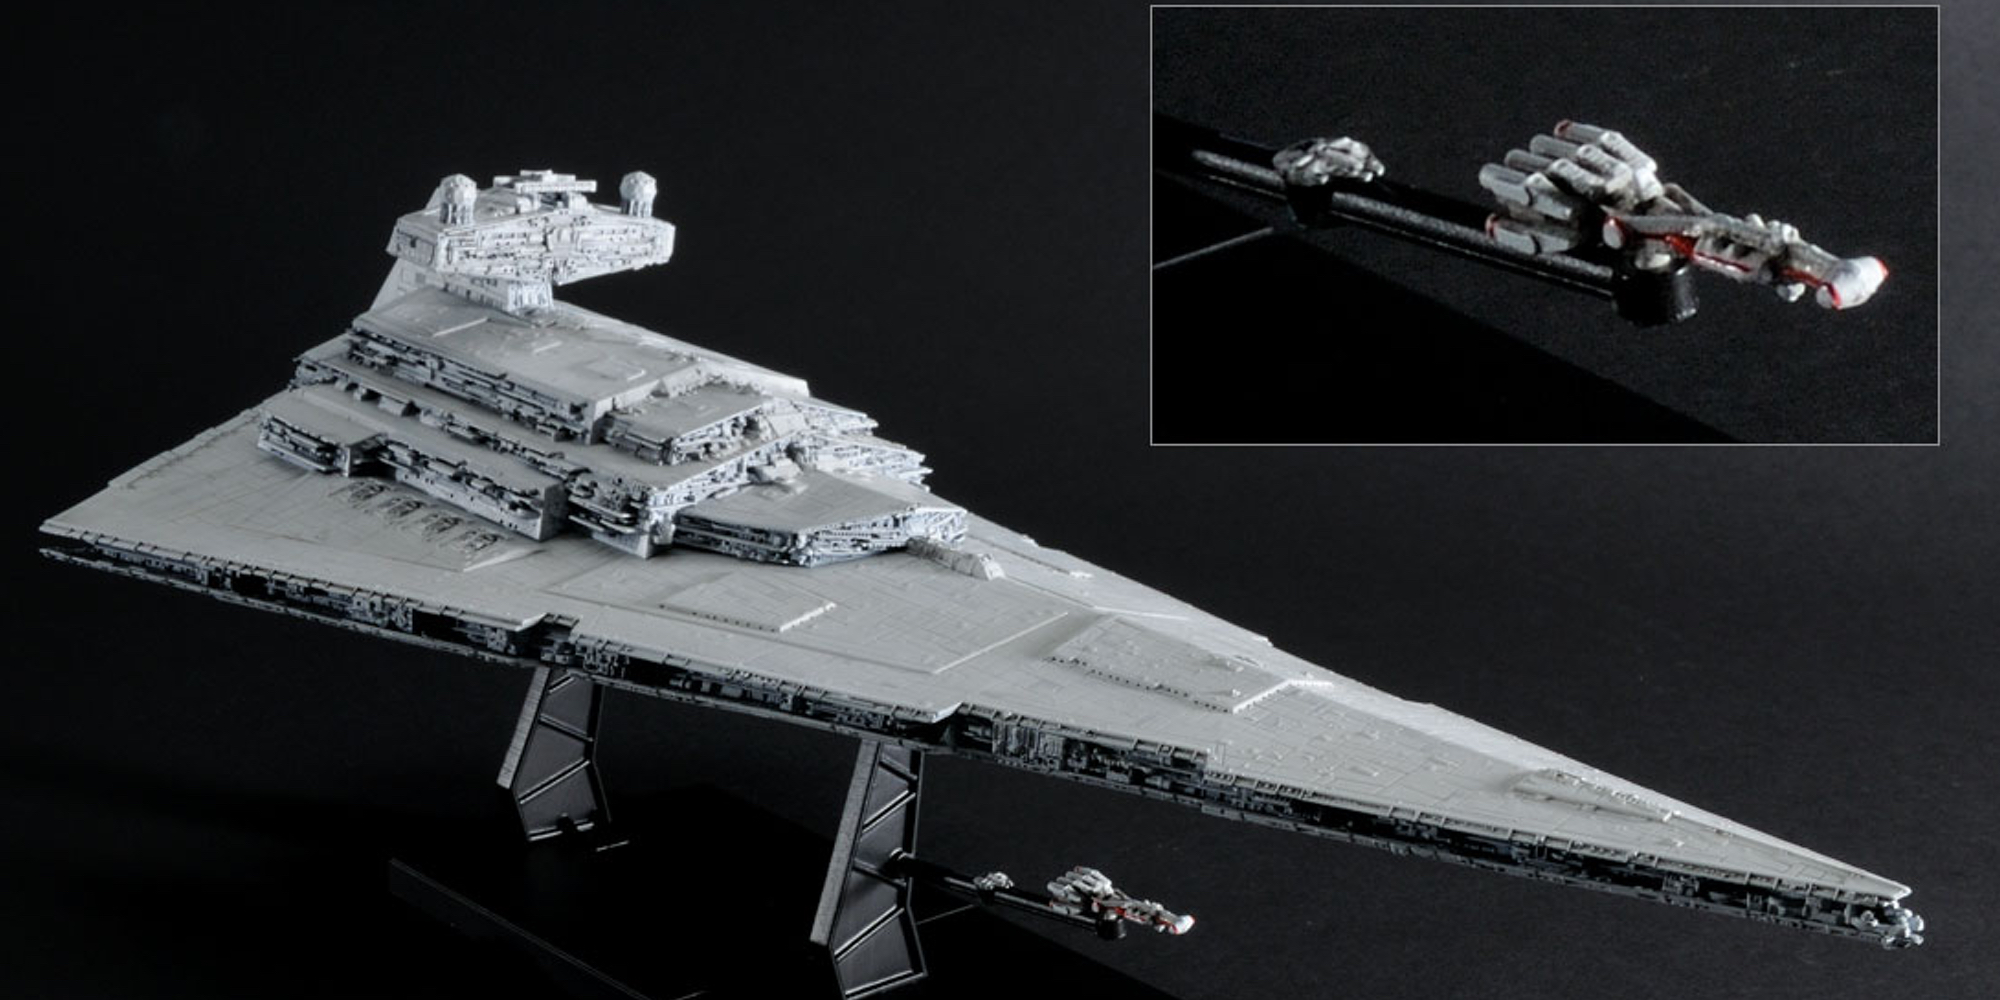 Bandai's Star Destroyer with display stand and miniatures